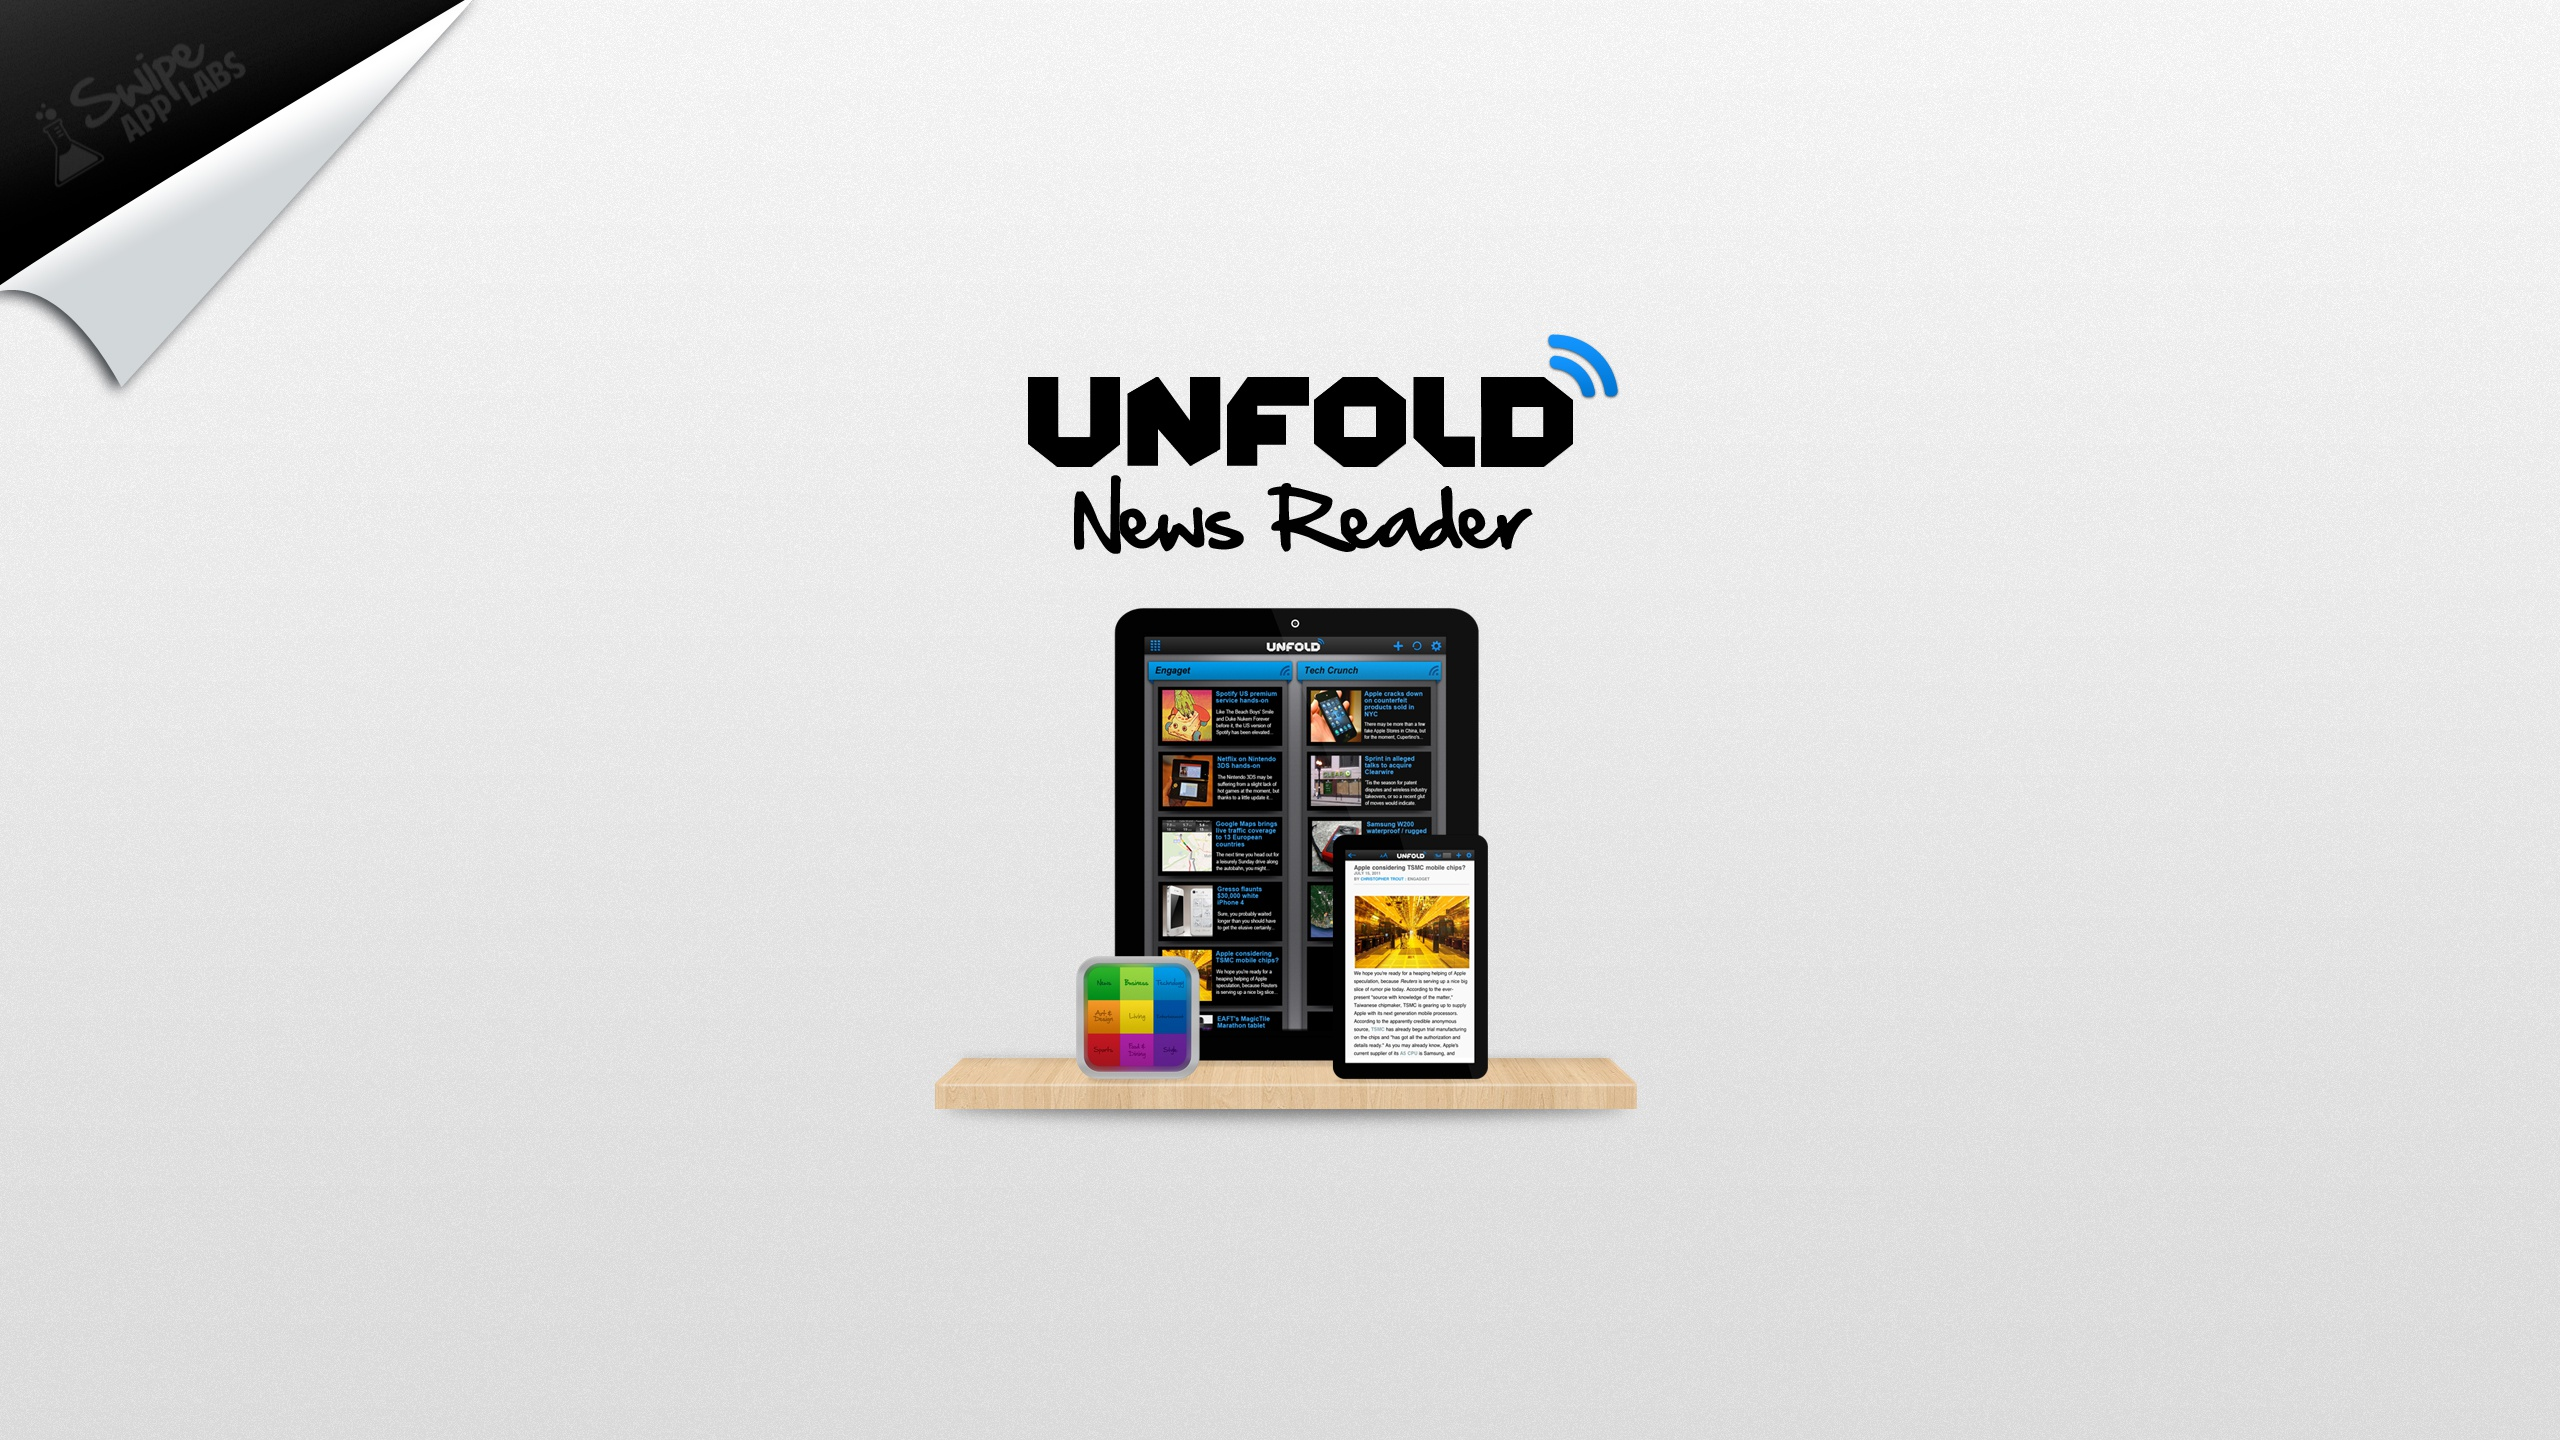 Unfold wallpaper full